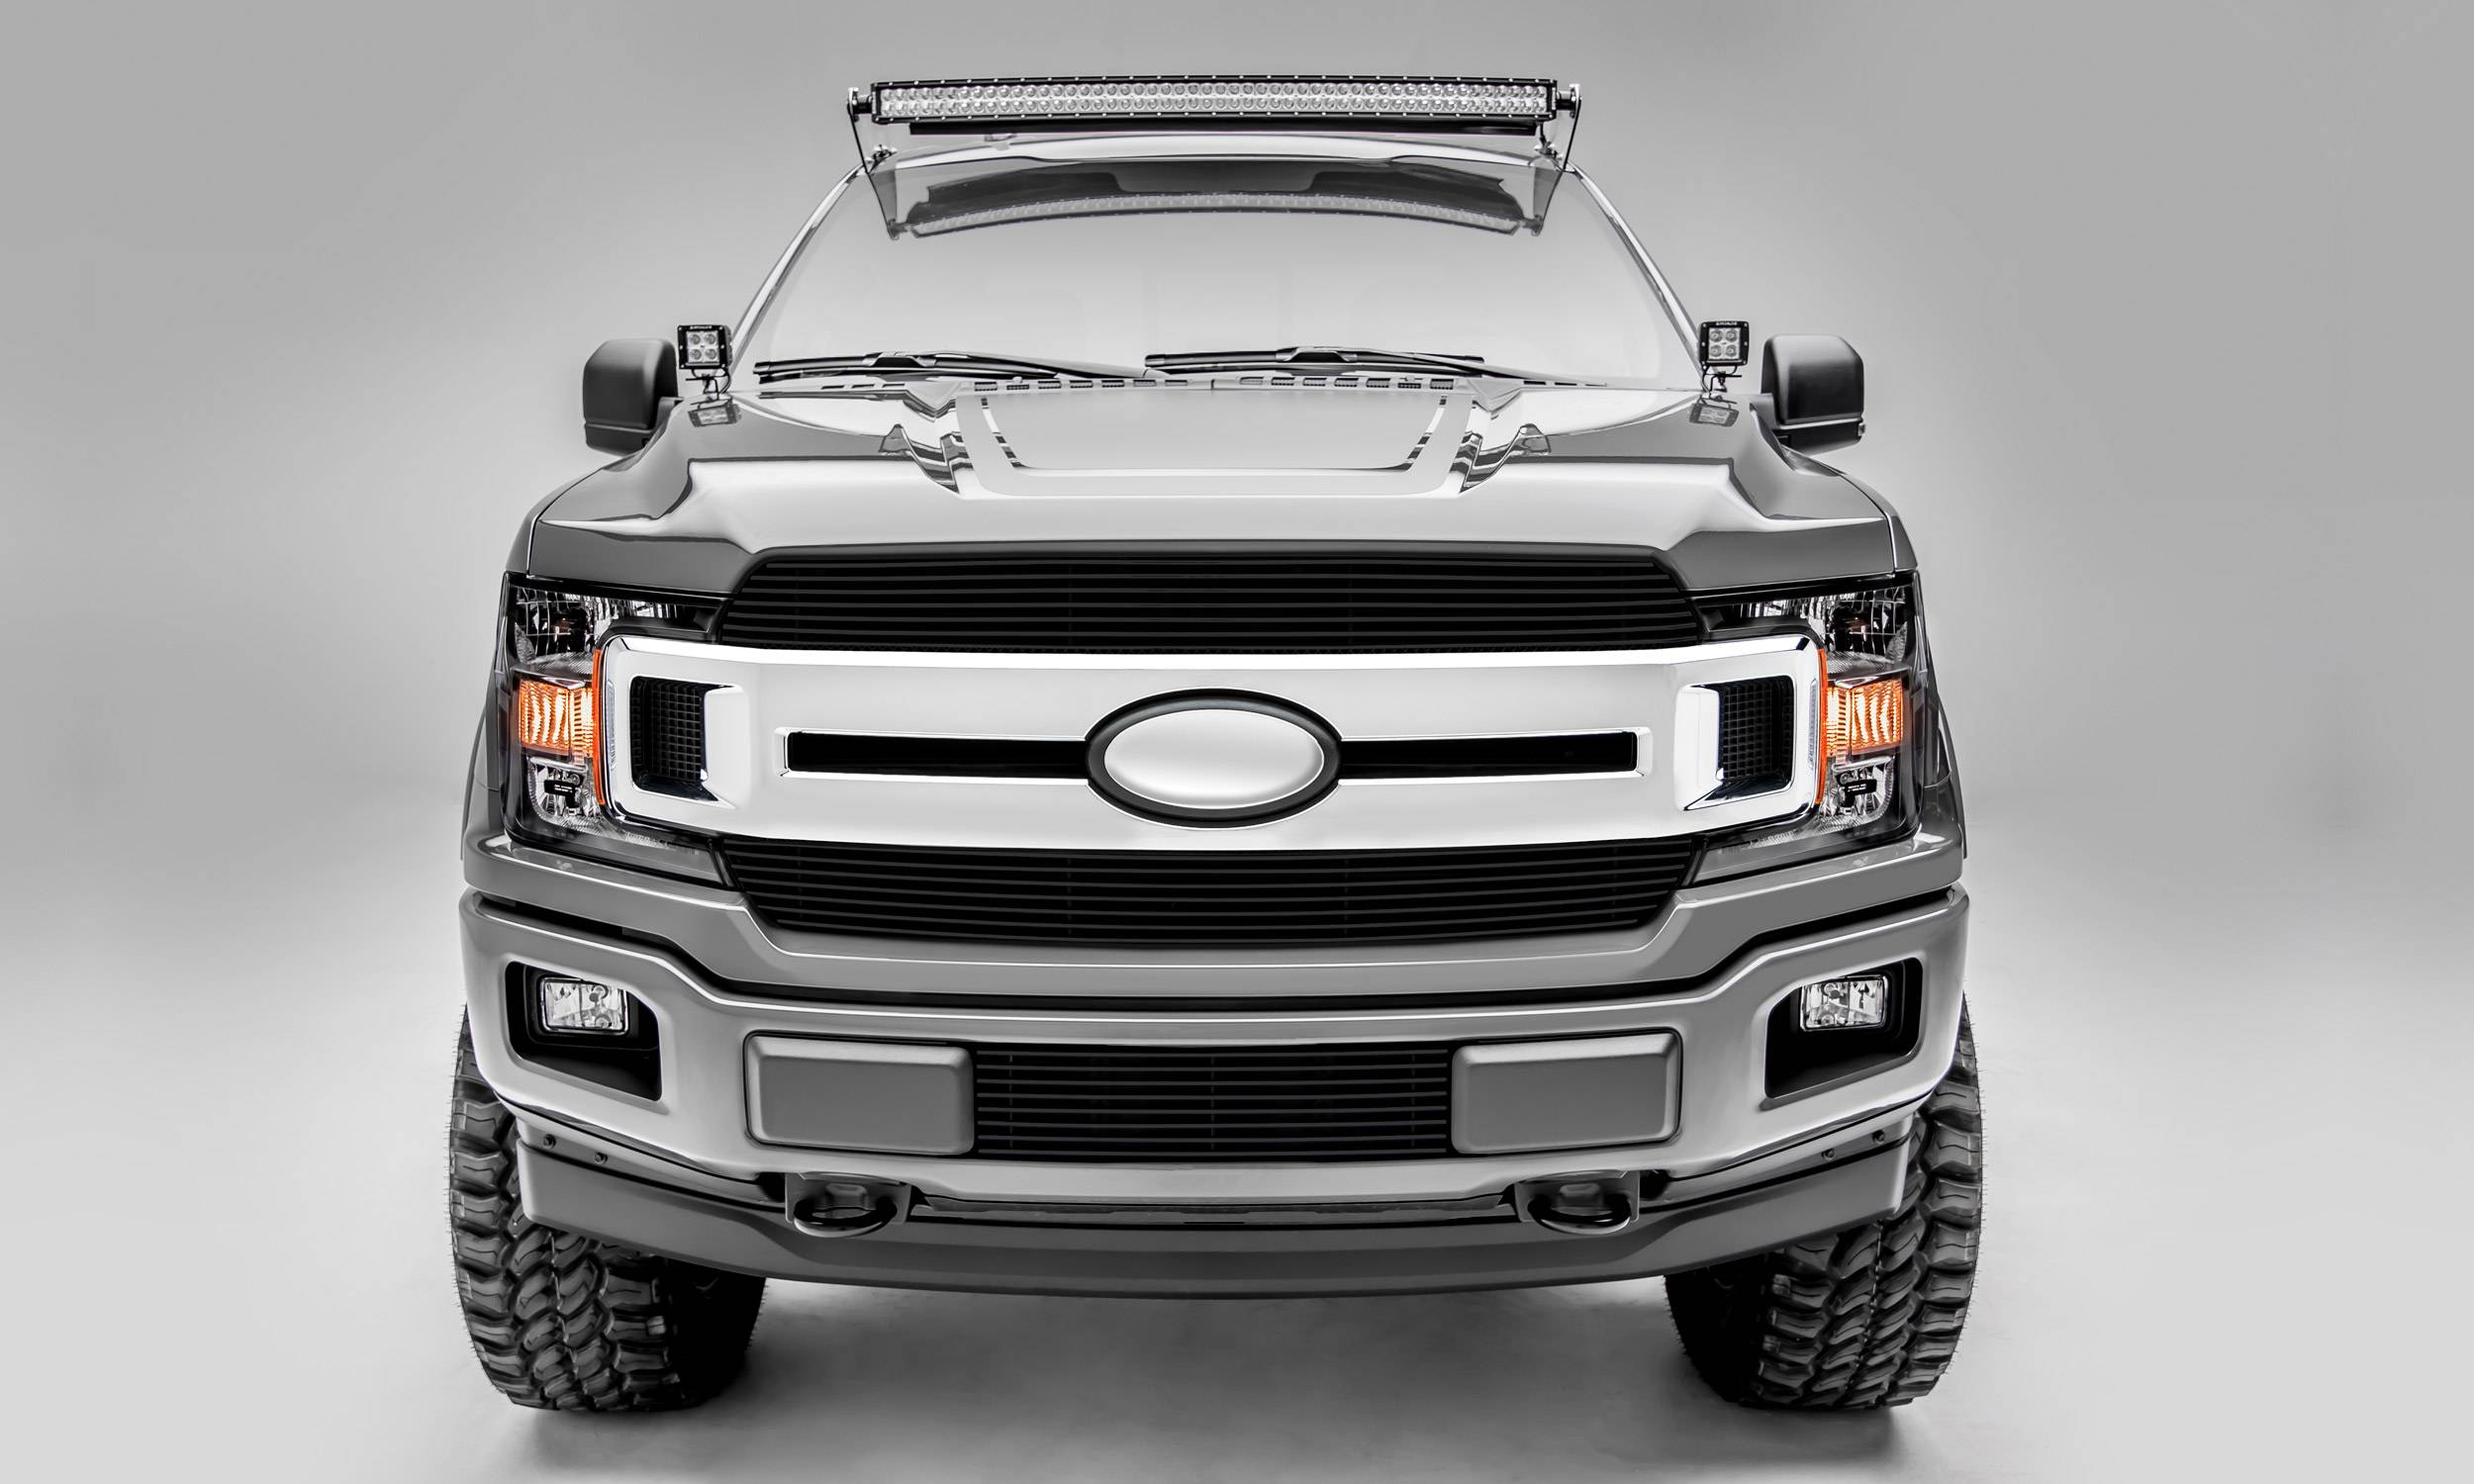 T-REX Grilles - 2018-2020 F-150 XLT, Lariat Billet Grille, Black, 2 Pc, Insert, Does Not Fit Vehicles with Camera - PN #20571B